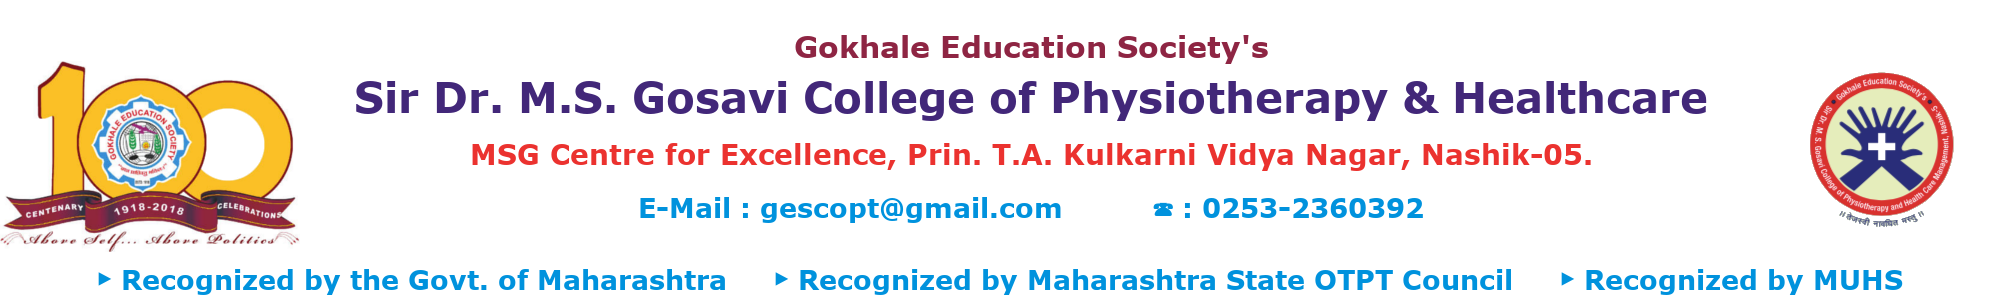 Sir Dr. M.S. Gosavi College of Physiotherapy & Healthcare Management